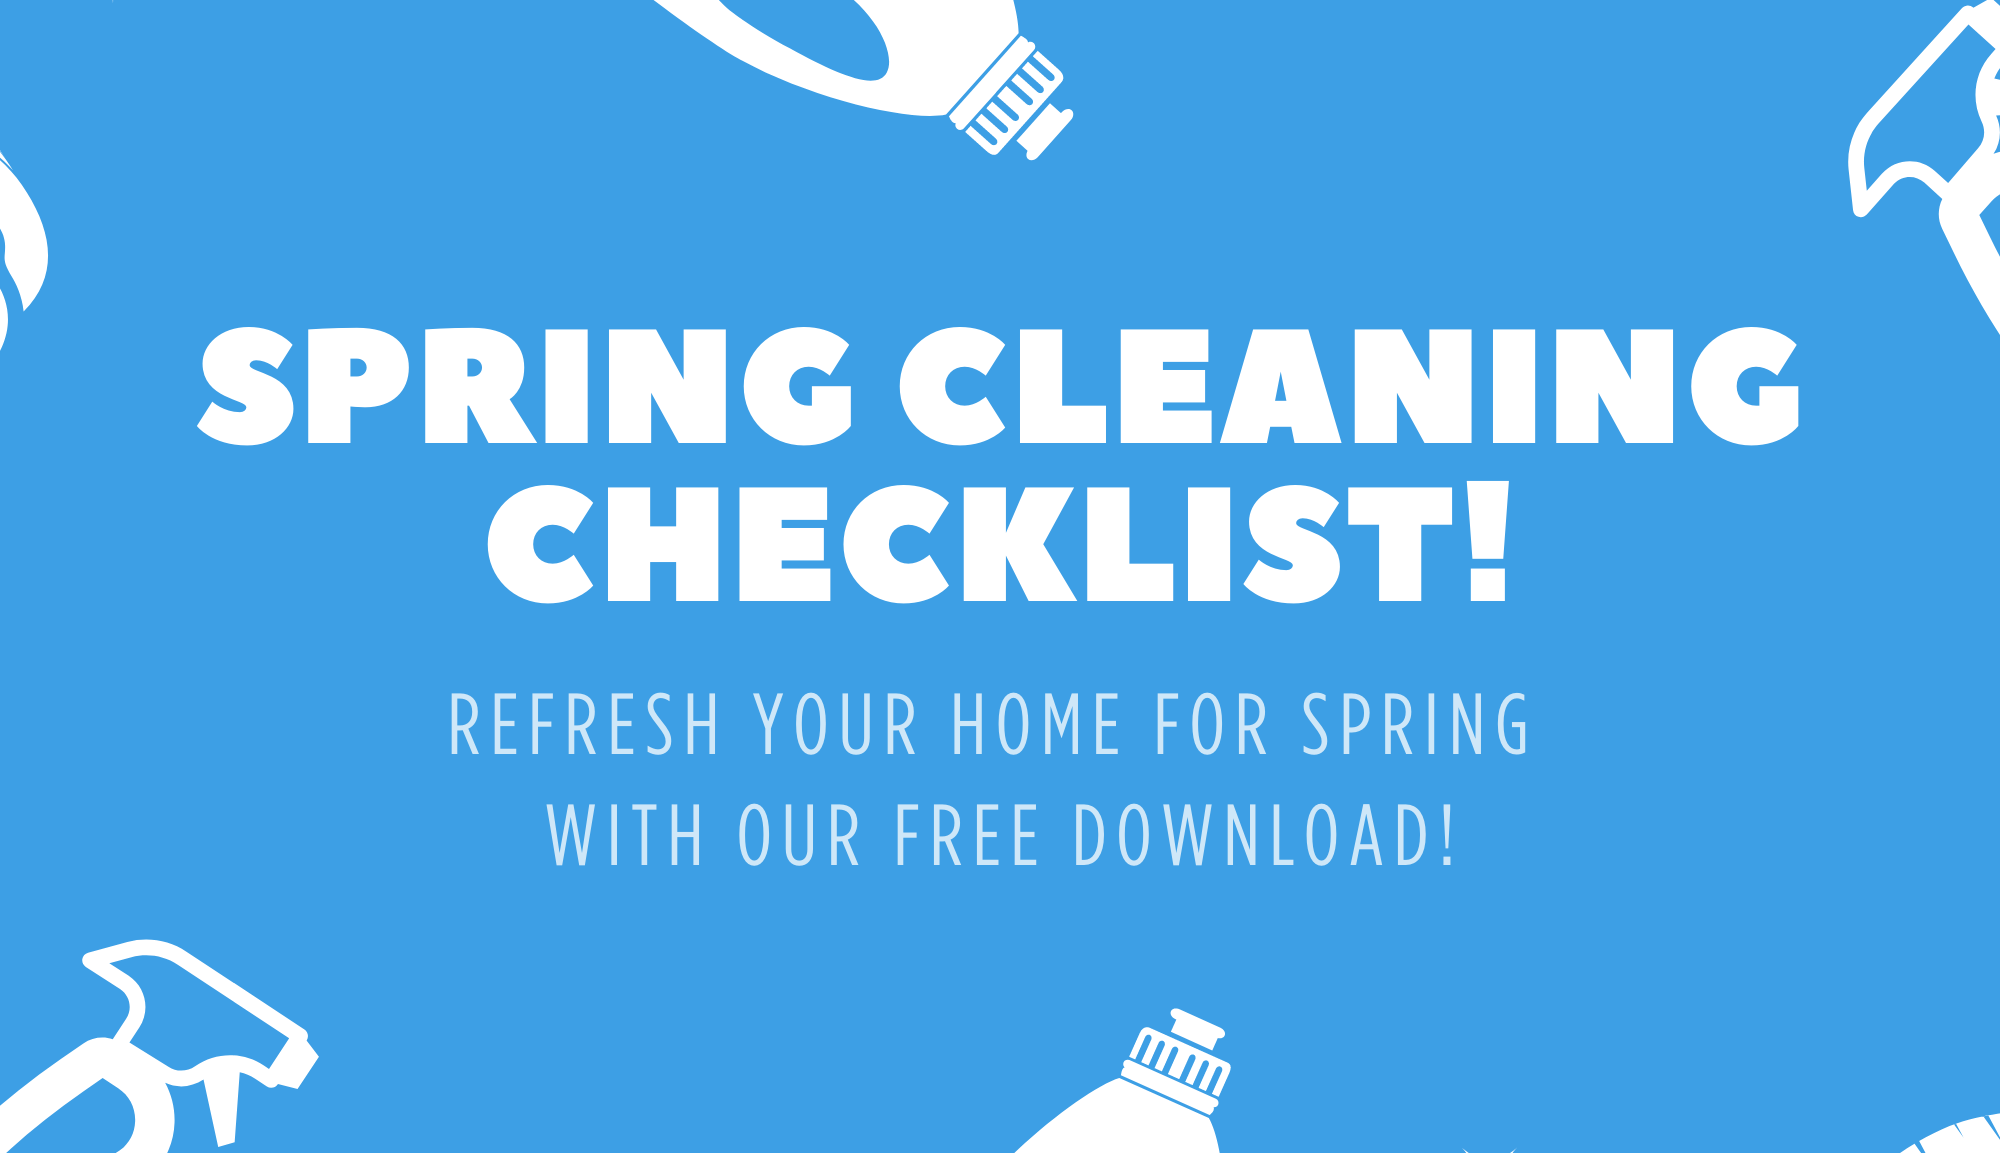 Spring Cleaning Checklist.